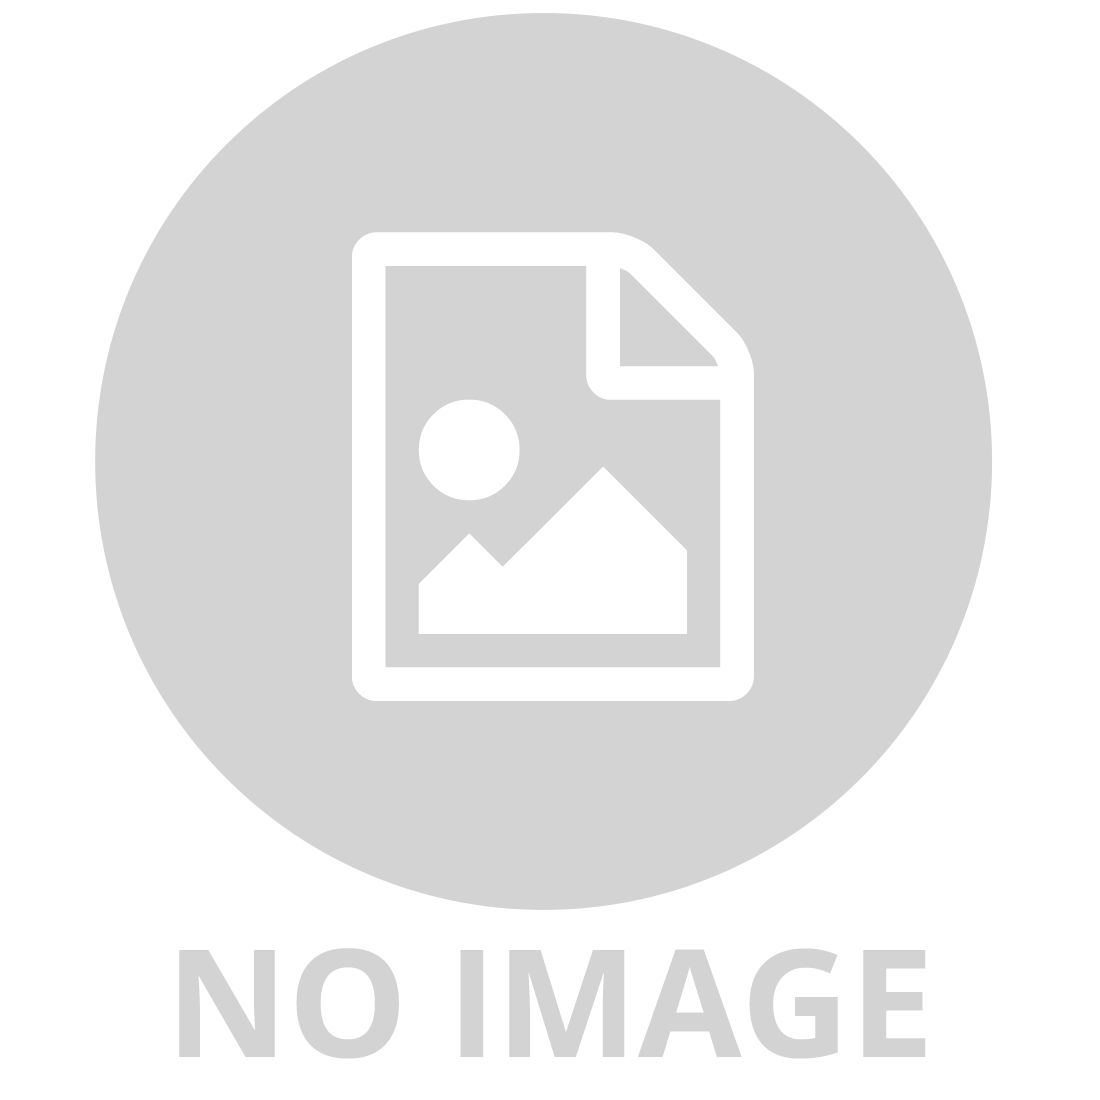 OUR GENERATION TABLE FOR TWO